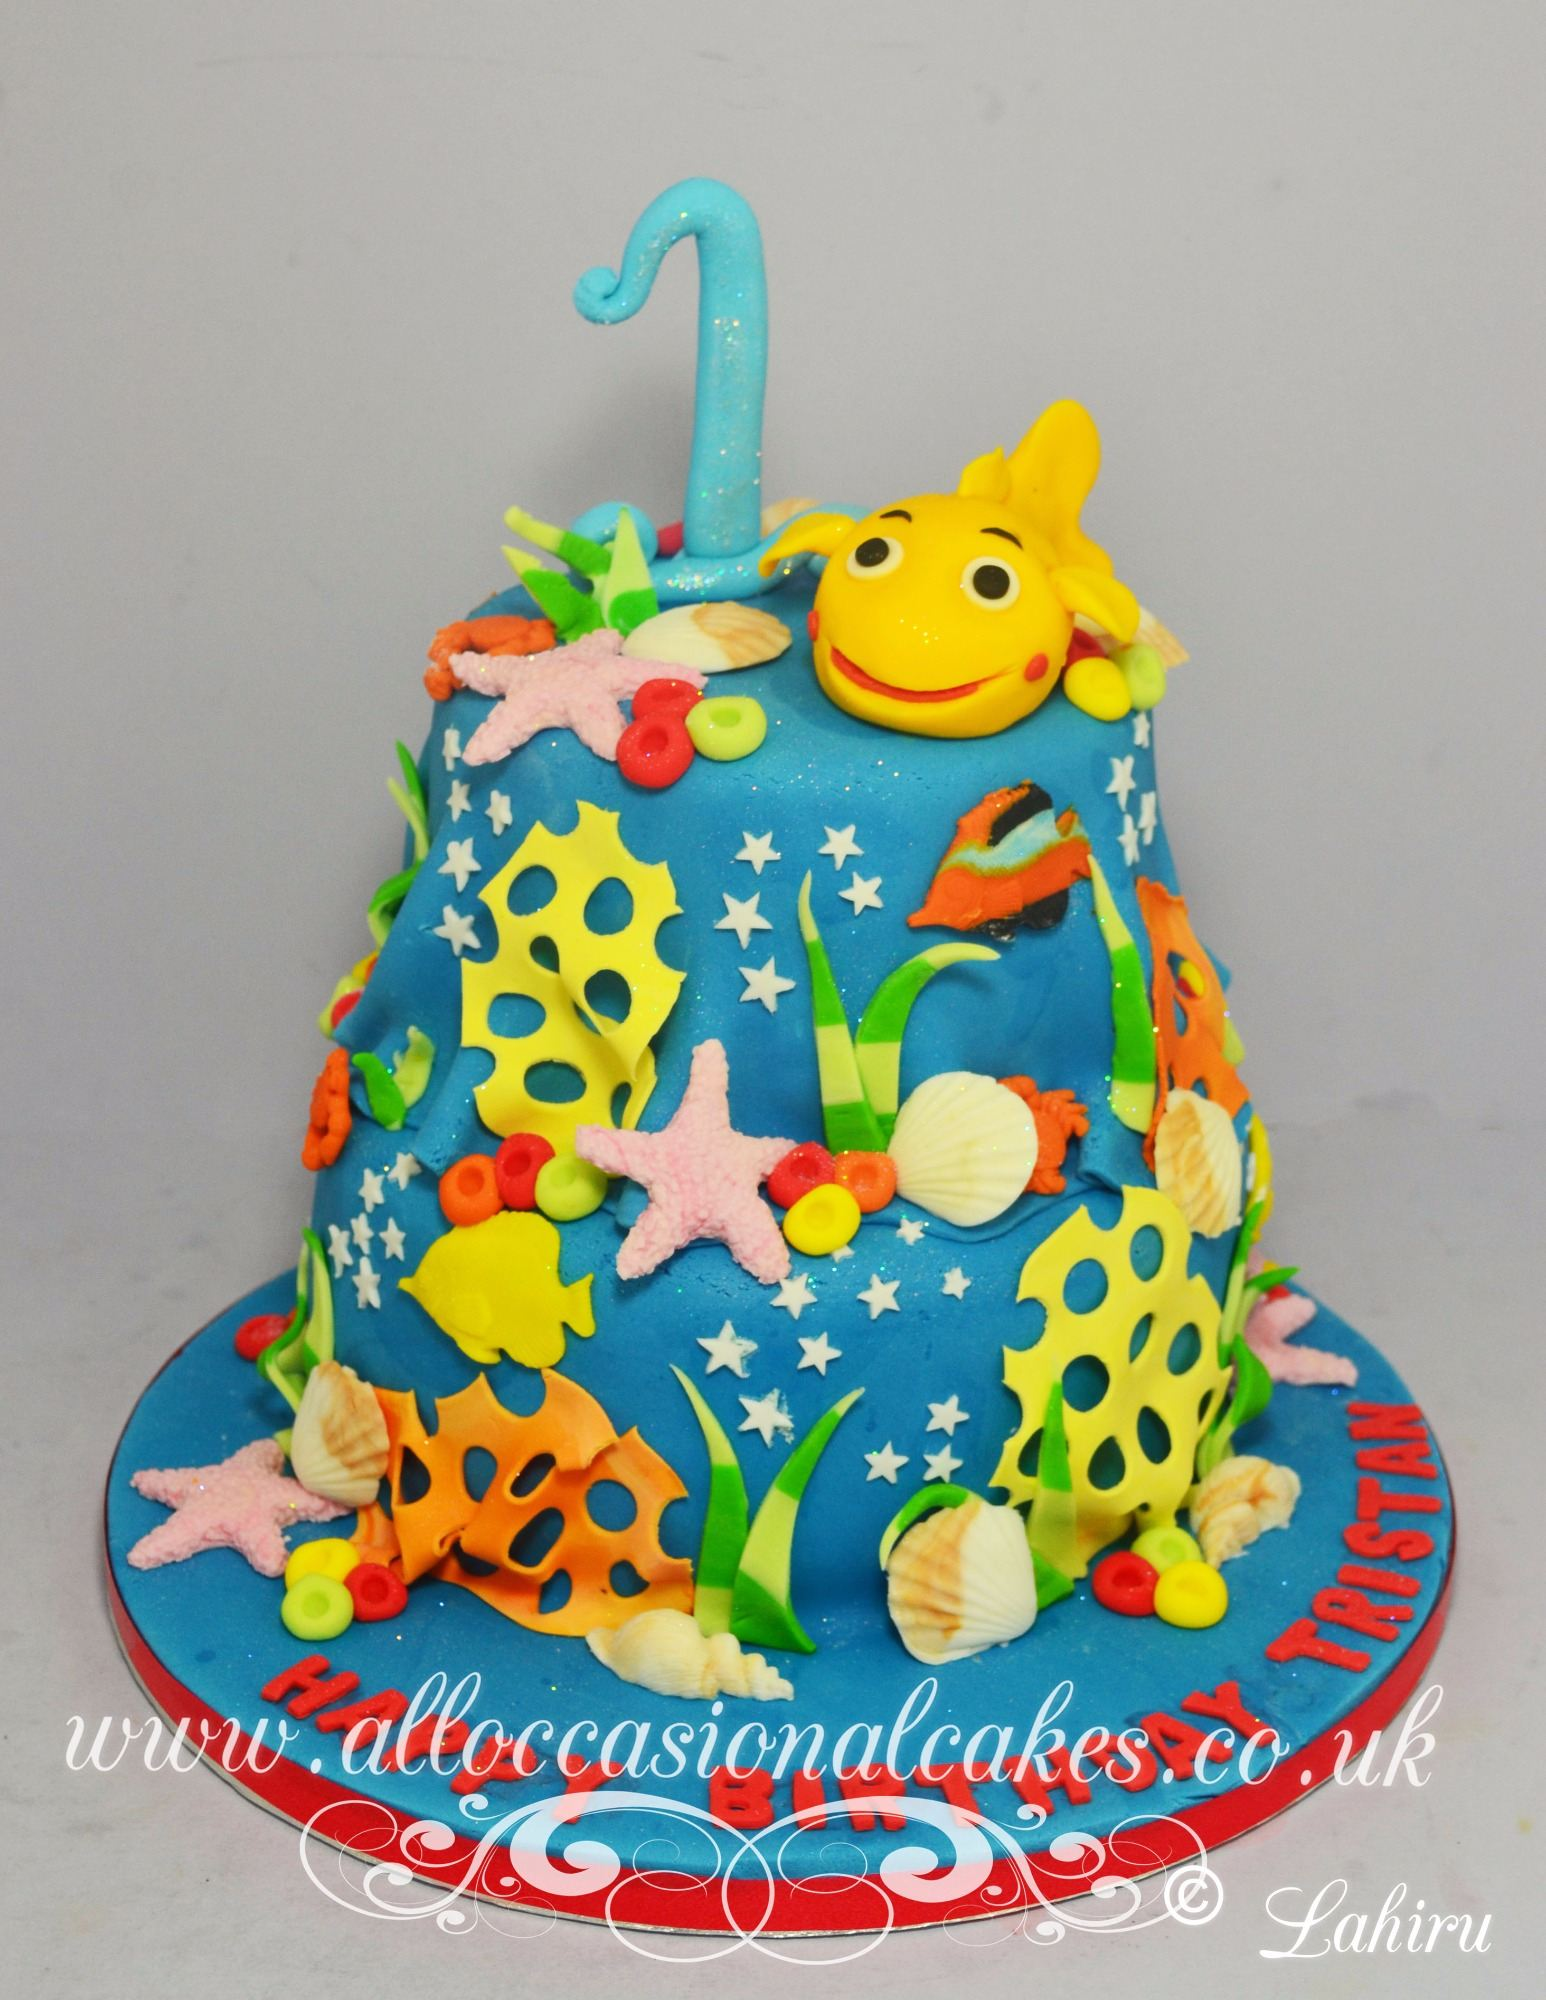 under the sea 1 birthday cake